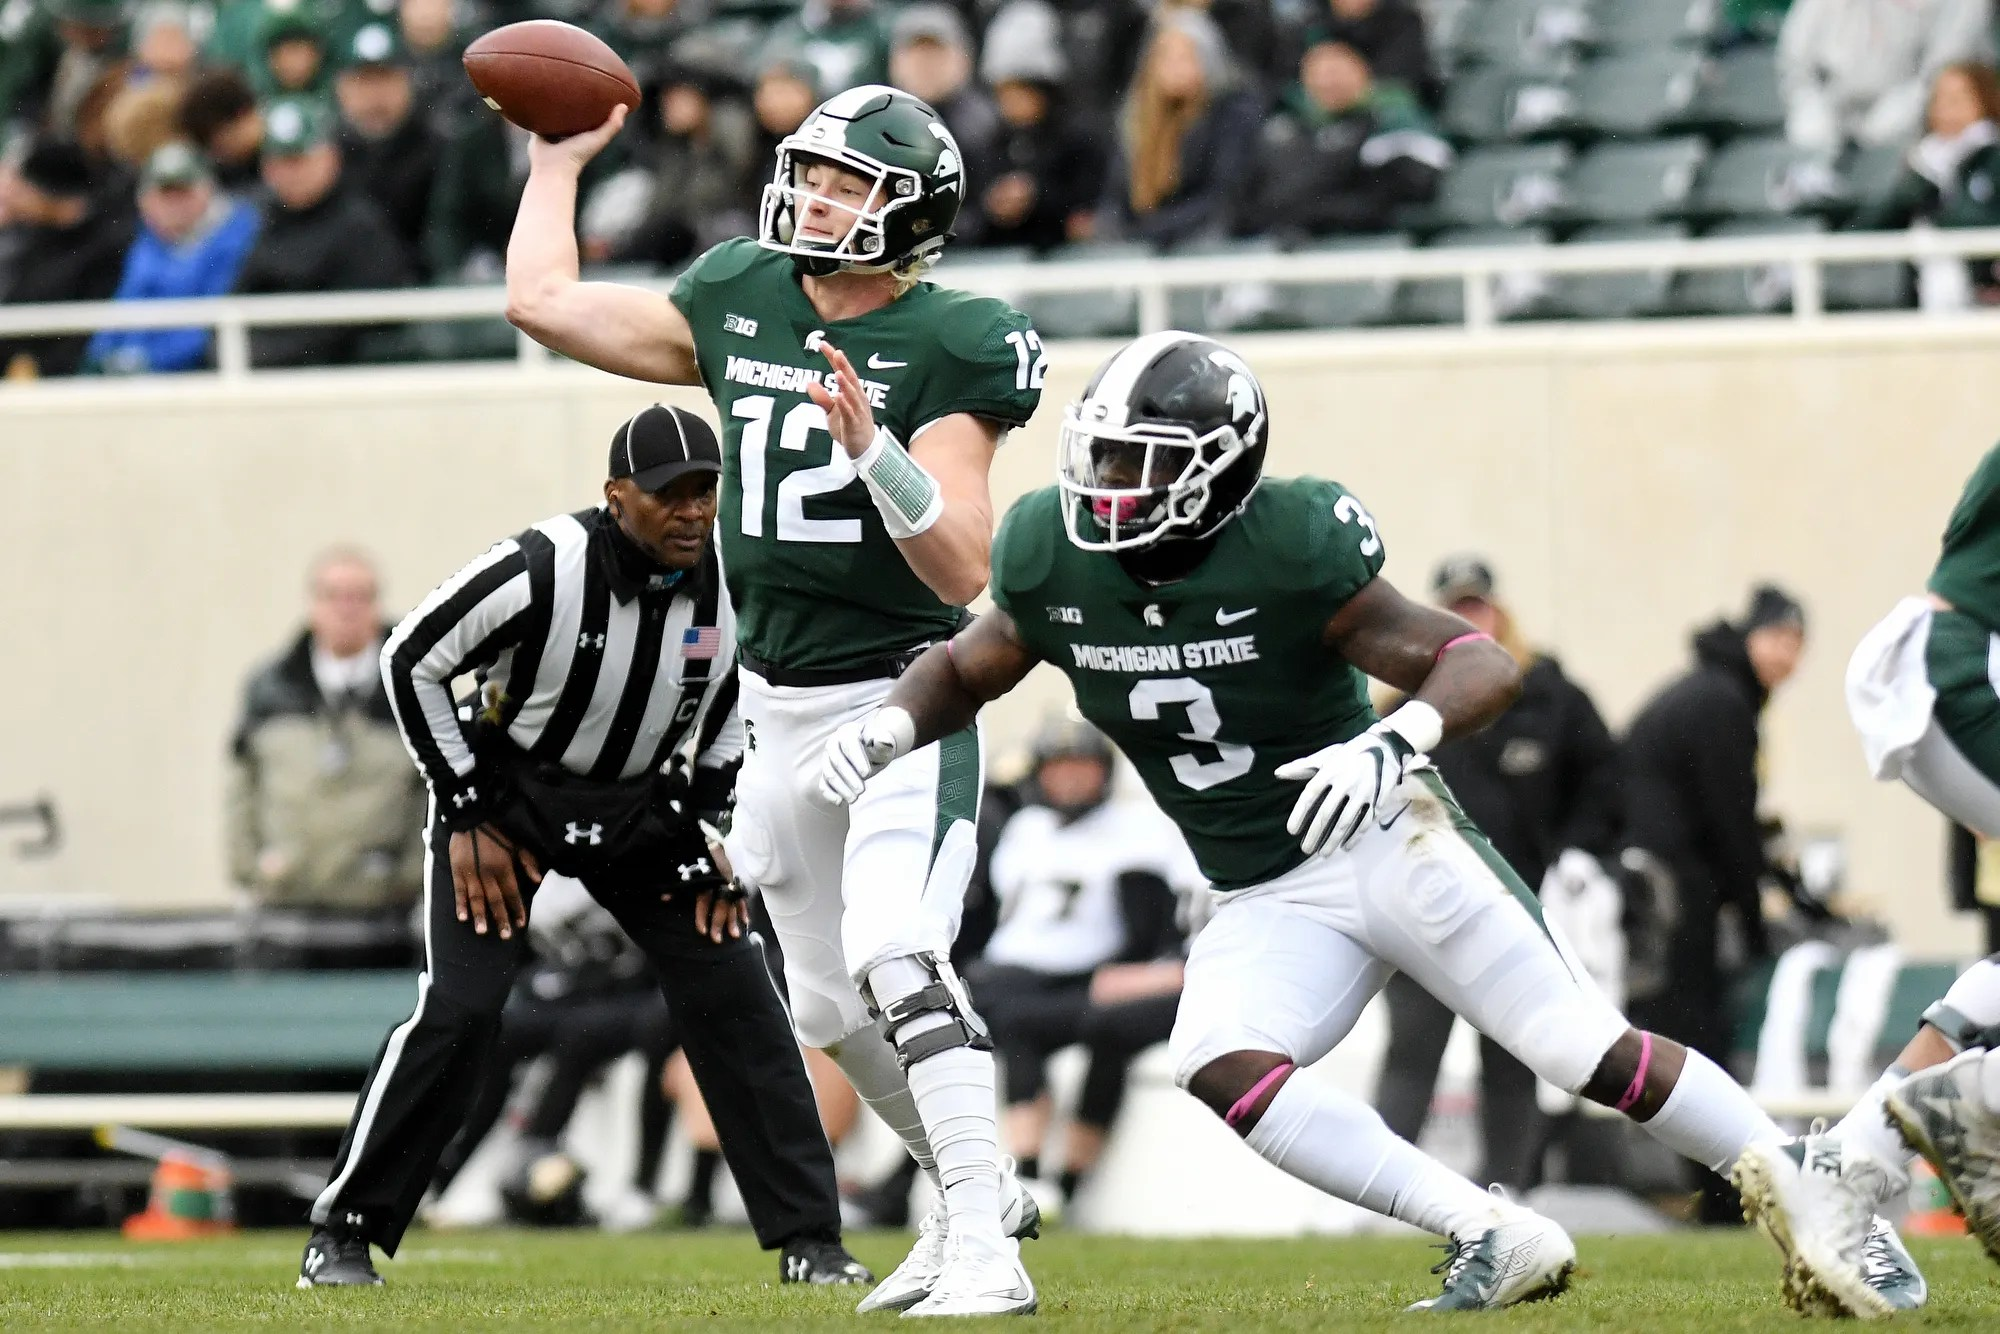 Michigan State football topples Purdue 2313 with backup QB